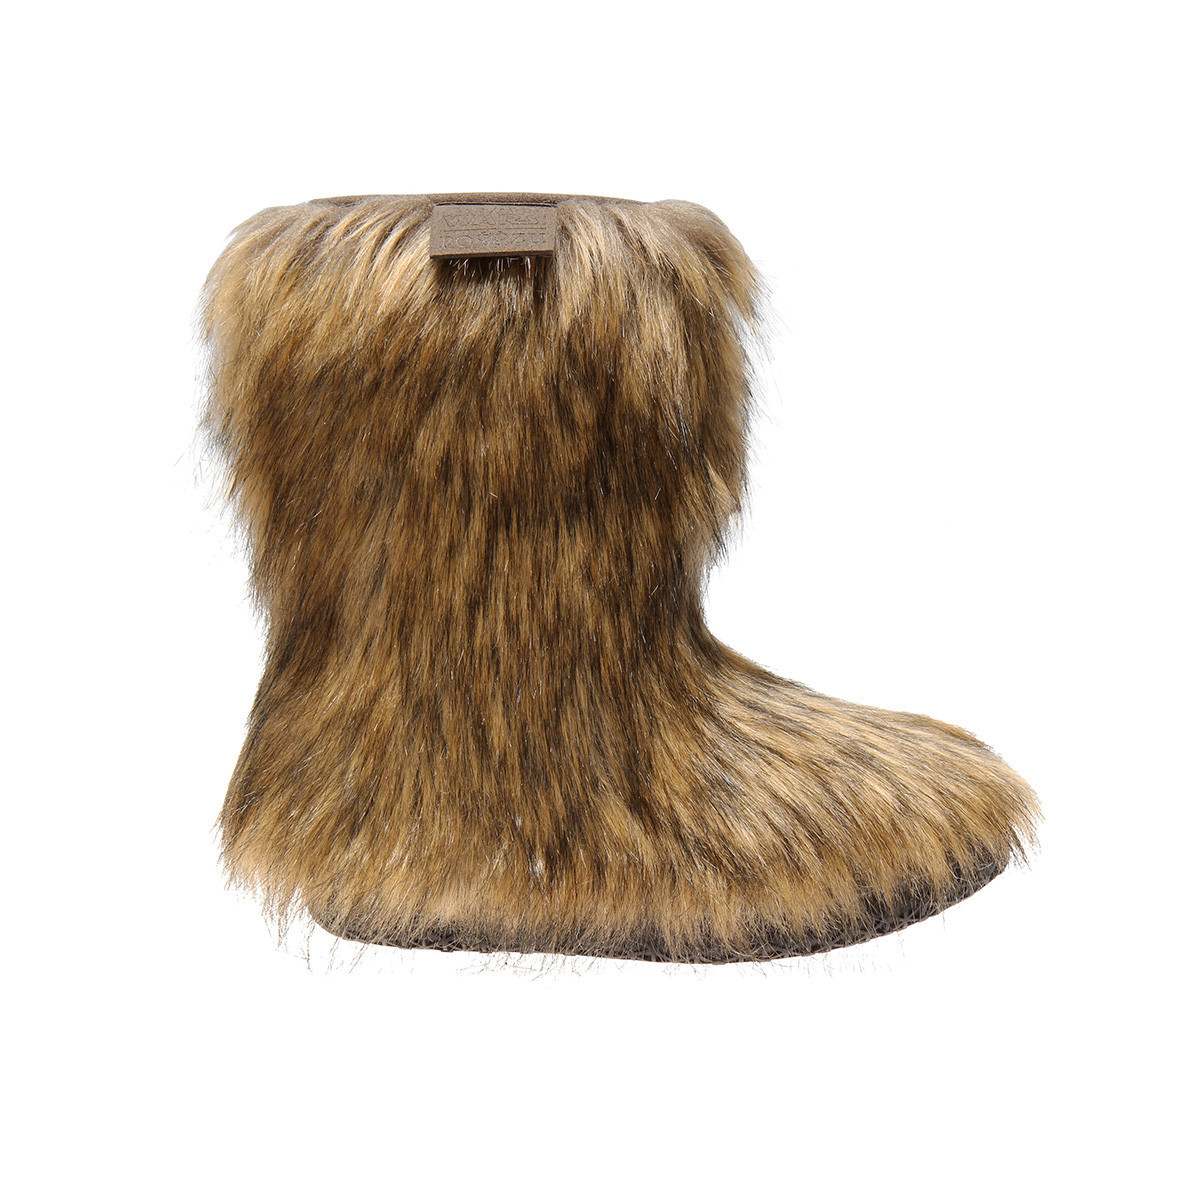 Po-Zu x Star Wars women's The Force Awakens Chewie boots (faux fur)